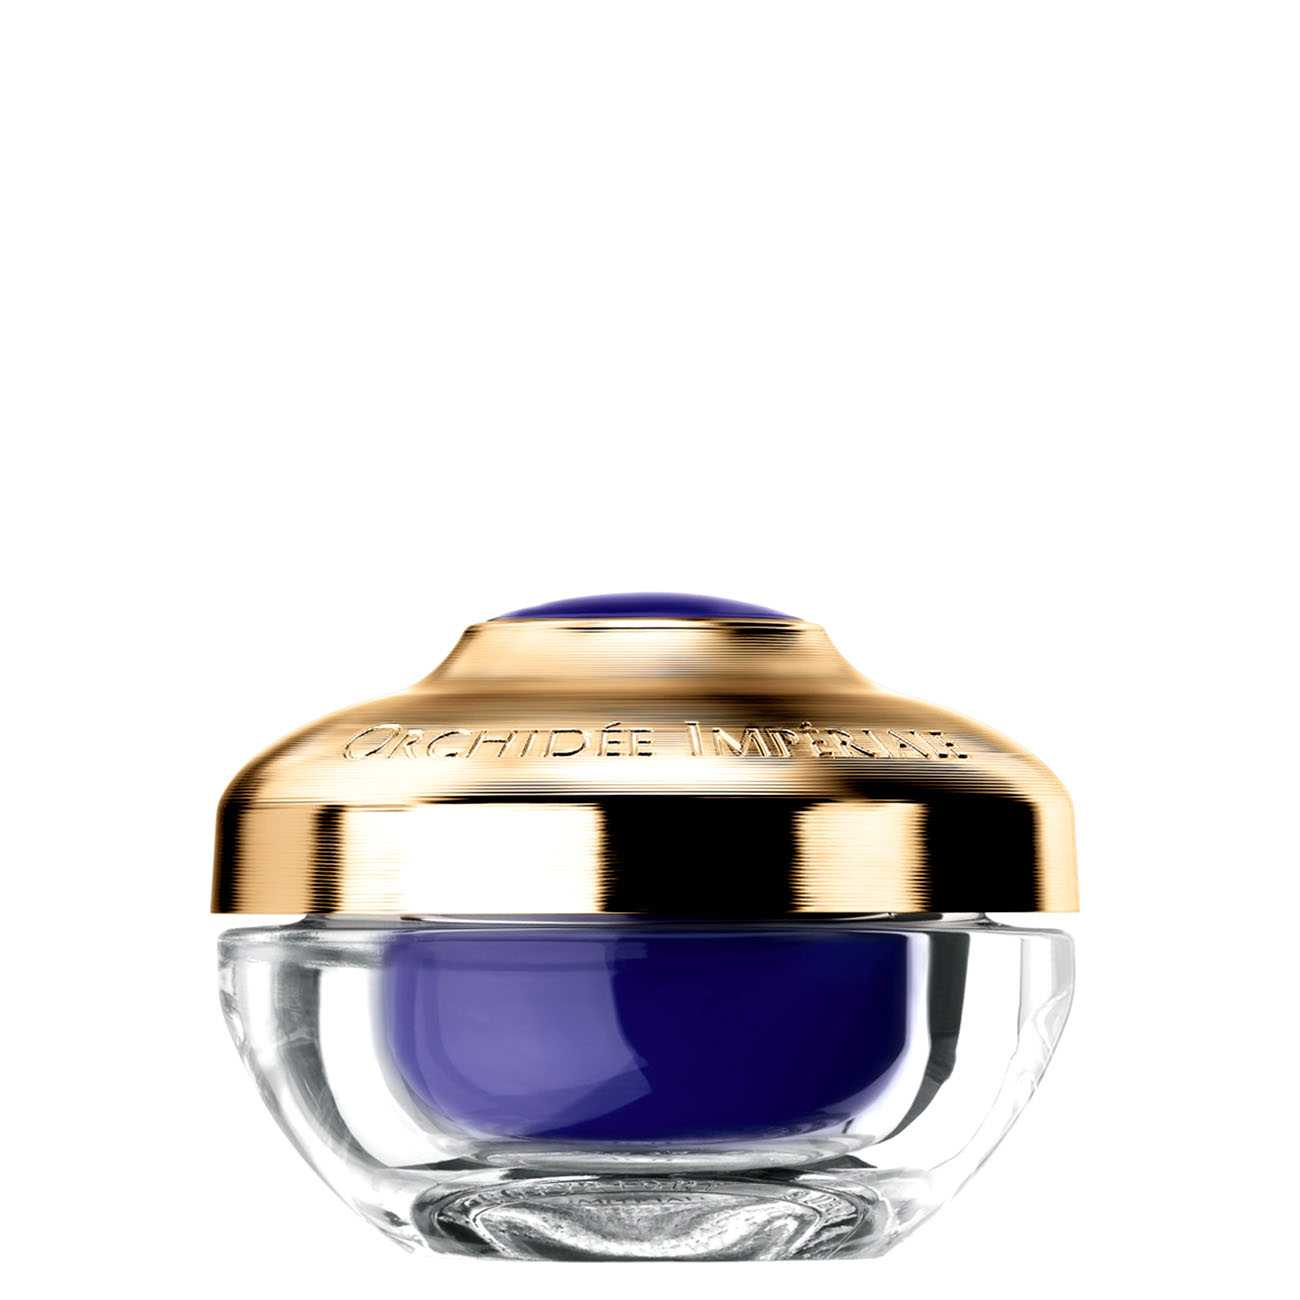 ORCHIDEE IMPERIALE 50 ML imagine produs